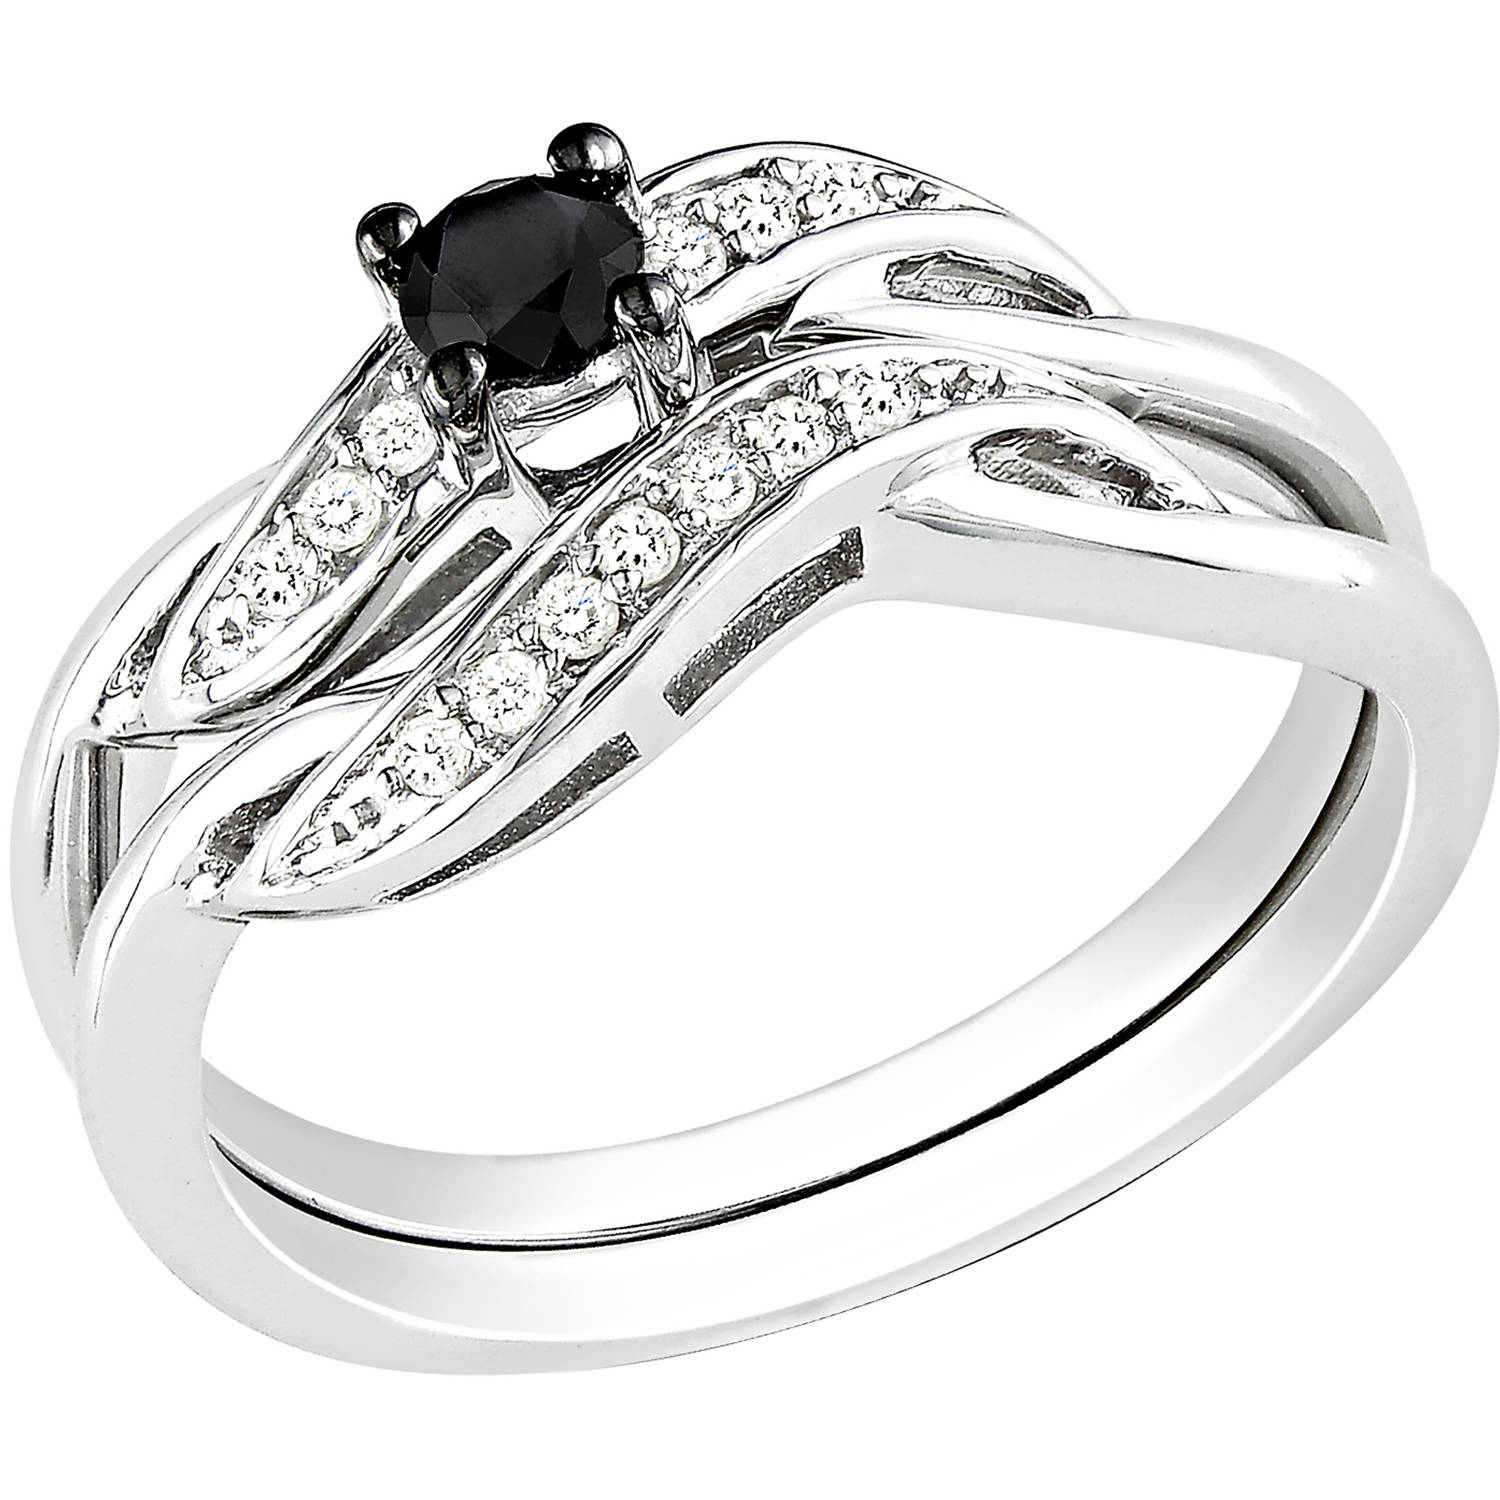 14 carat tw black and white diamond sterling silver bridal ring set walmartcom - Black Diamond Wedding Ring Set